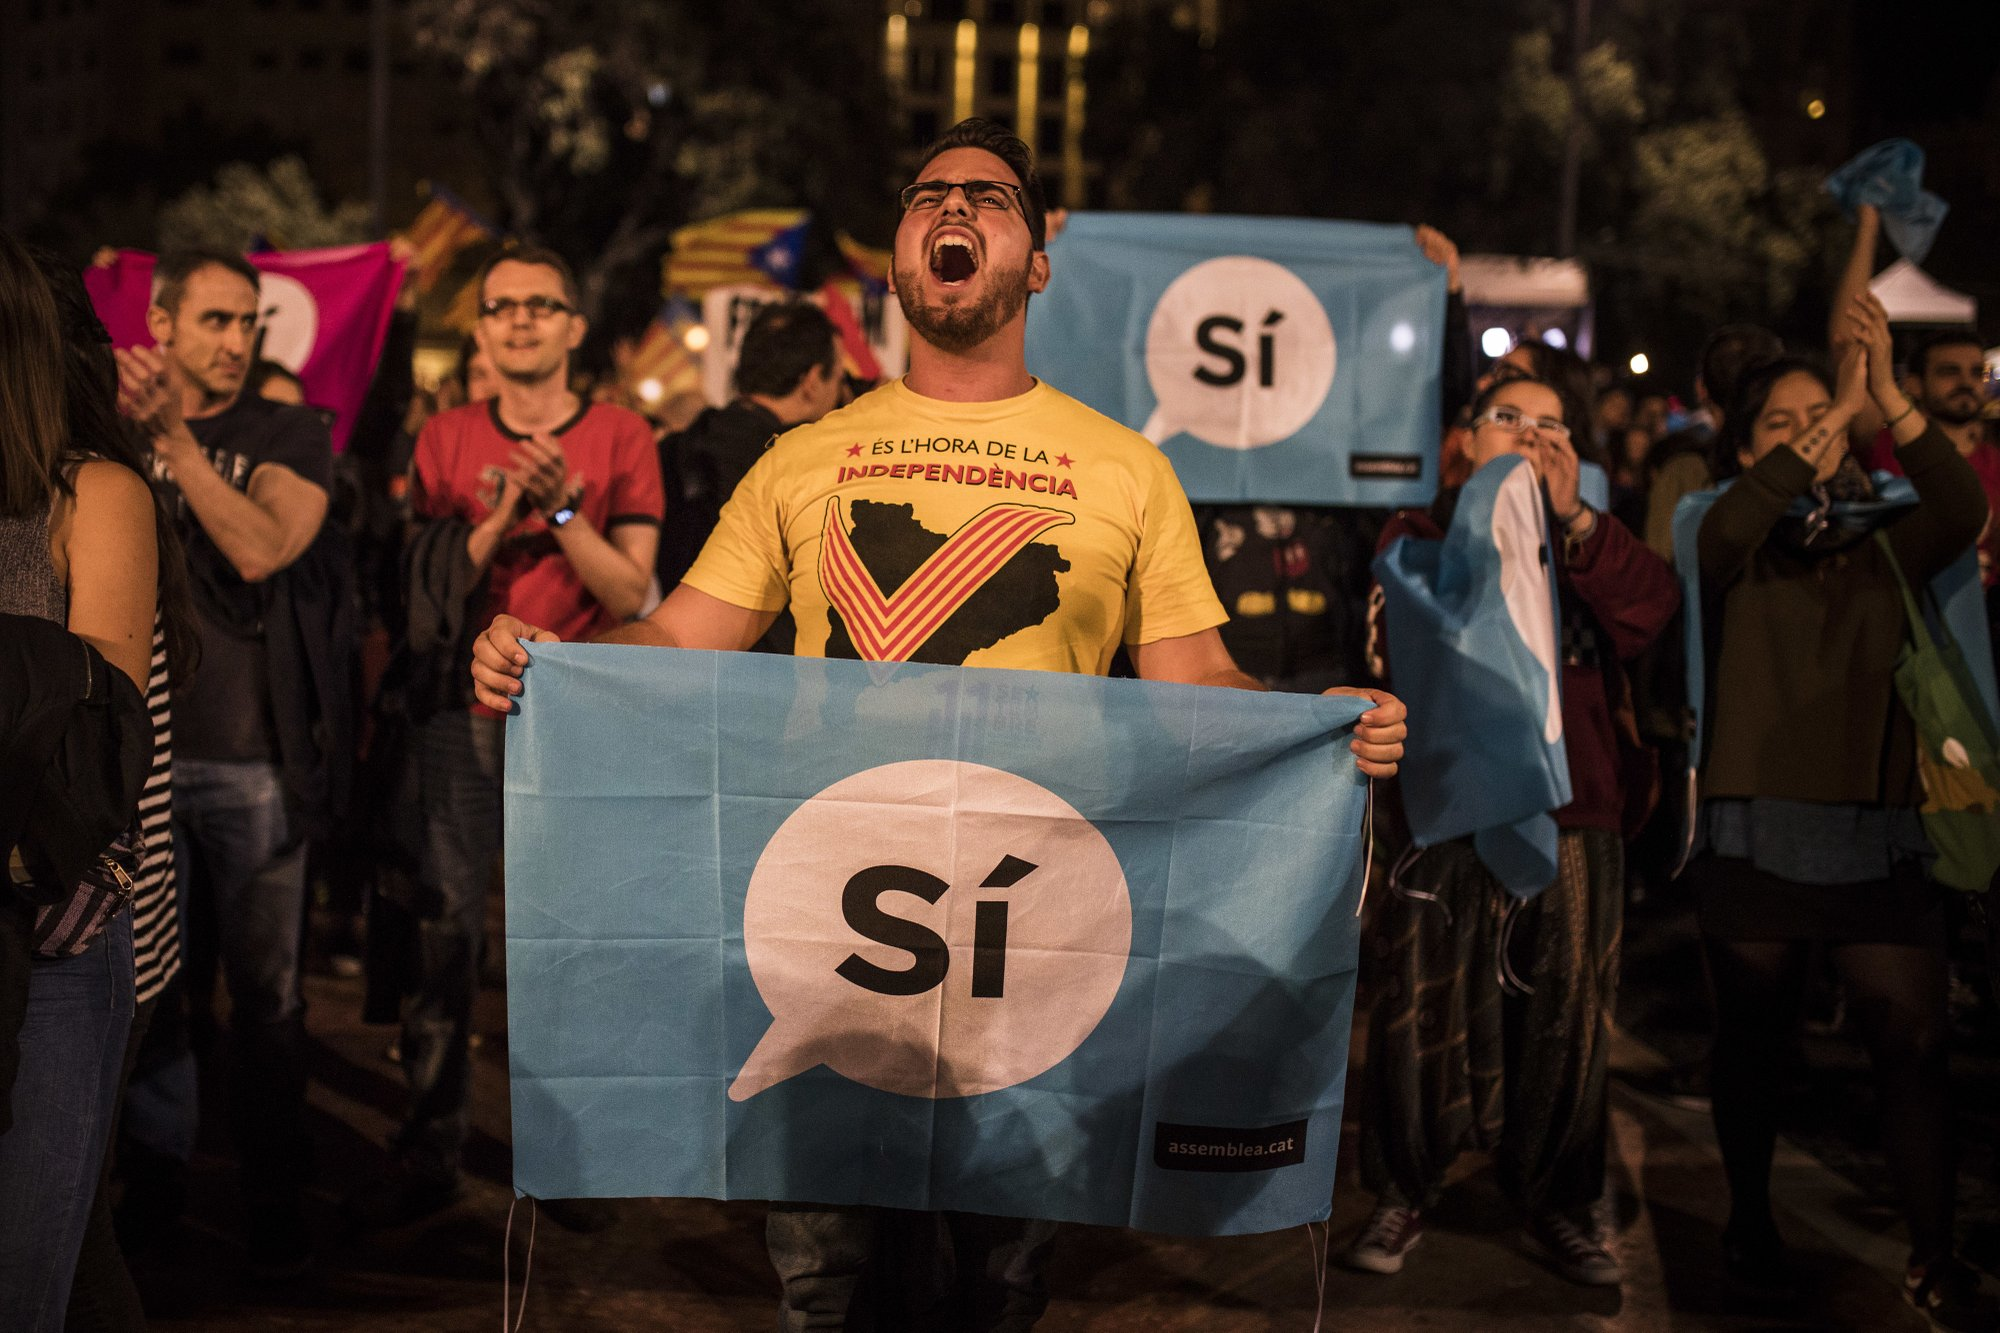 The Latest: Catalonia: 90 percent vote for independence